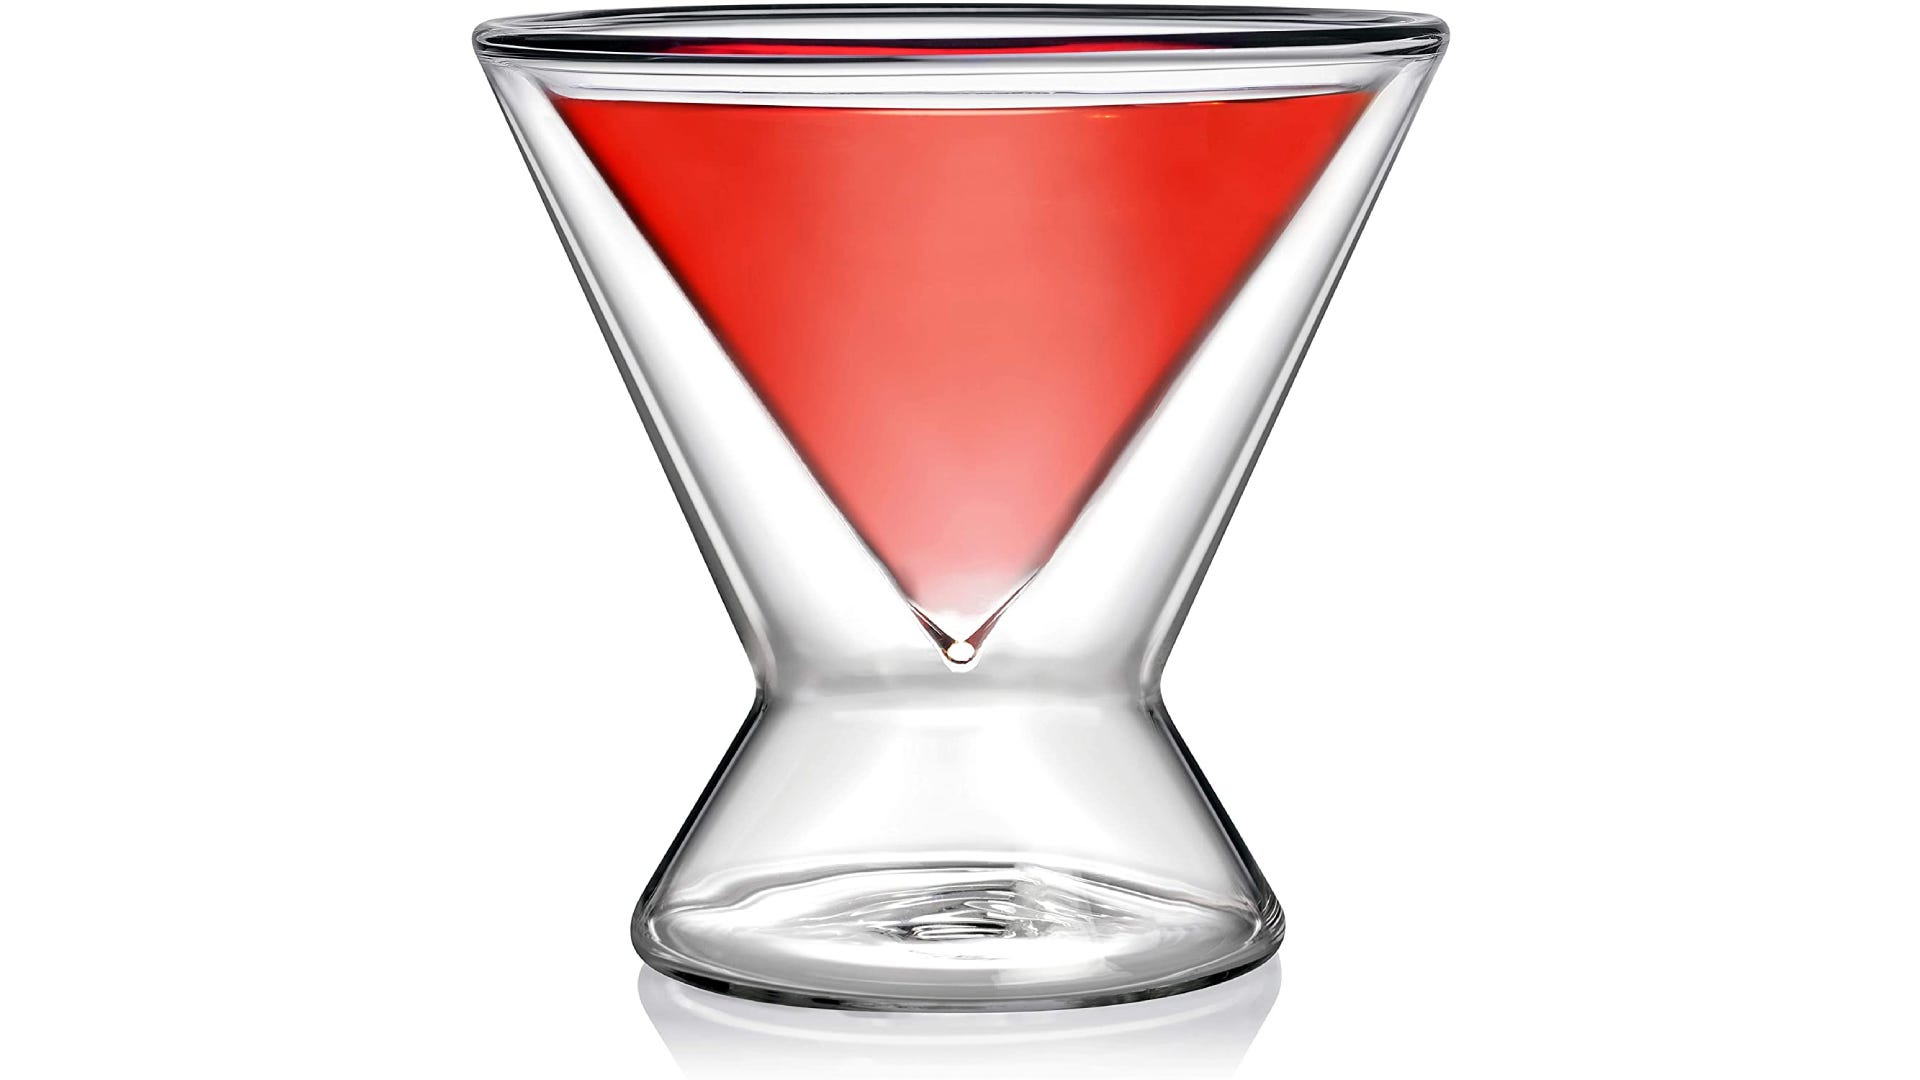 V-shaped glass with thick base, filled with red liquid.